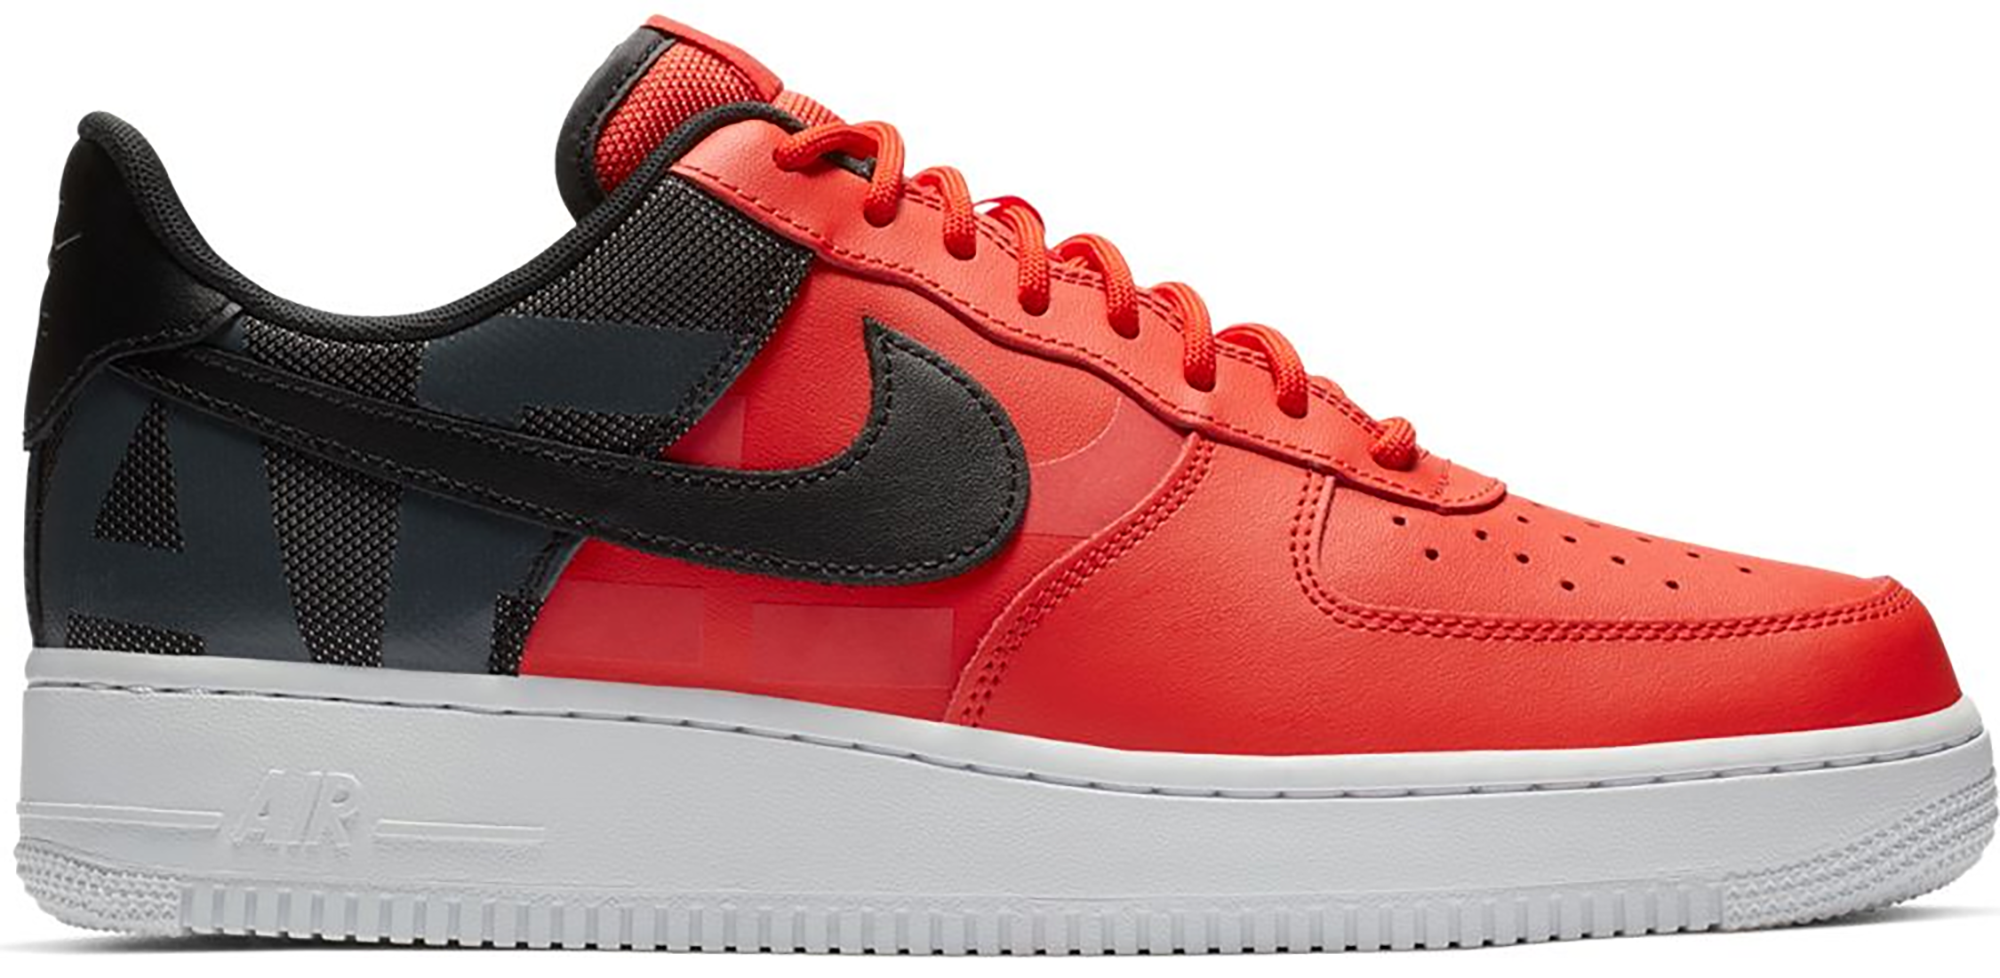 Nike Air Force 1 Low LV 8 Habanero Red